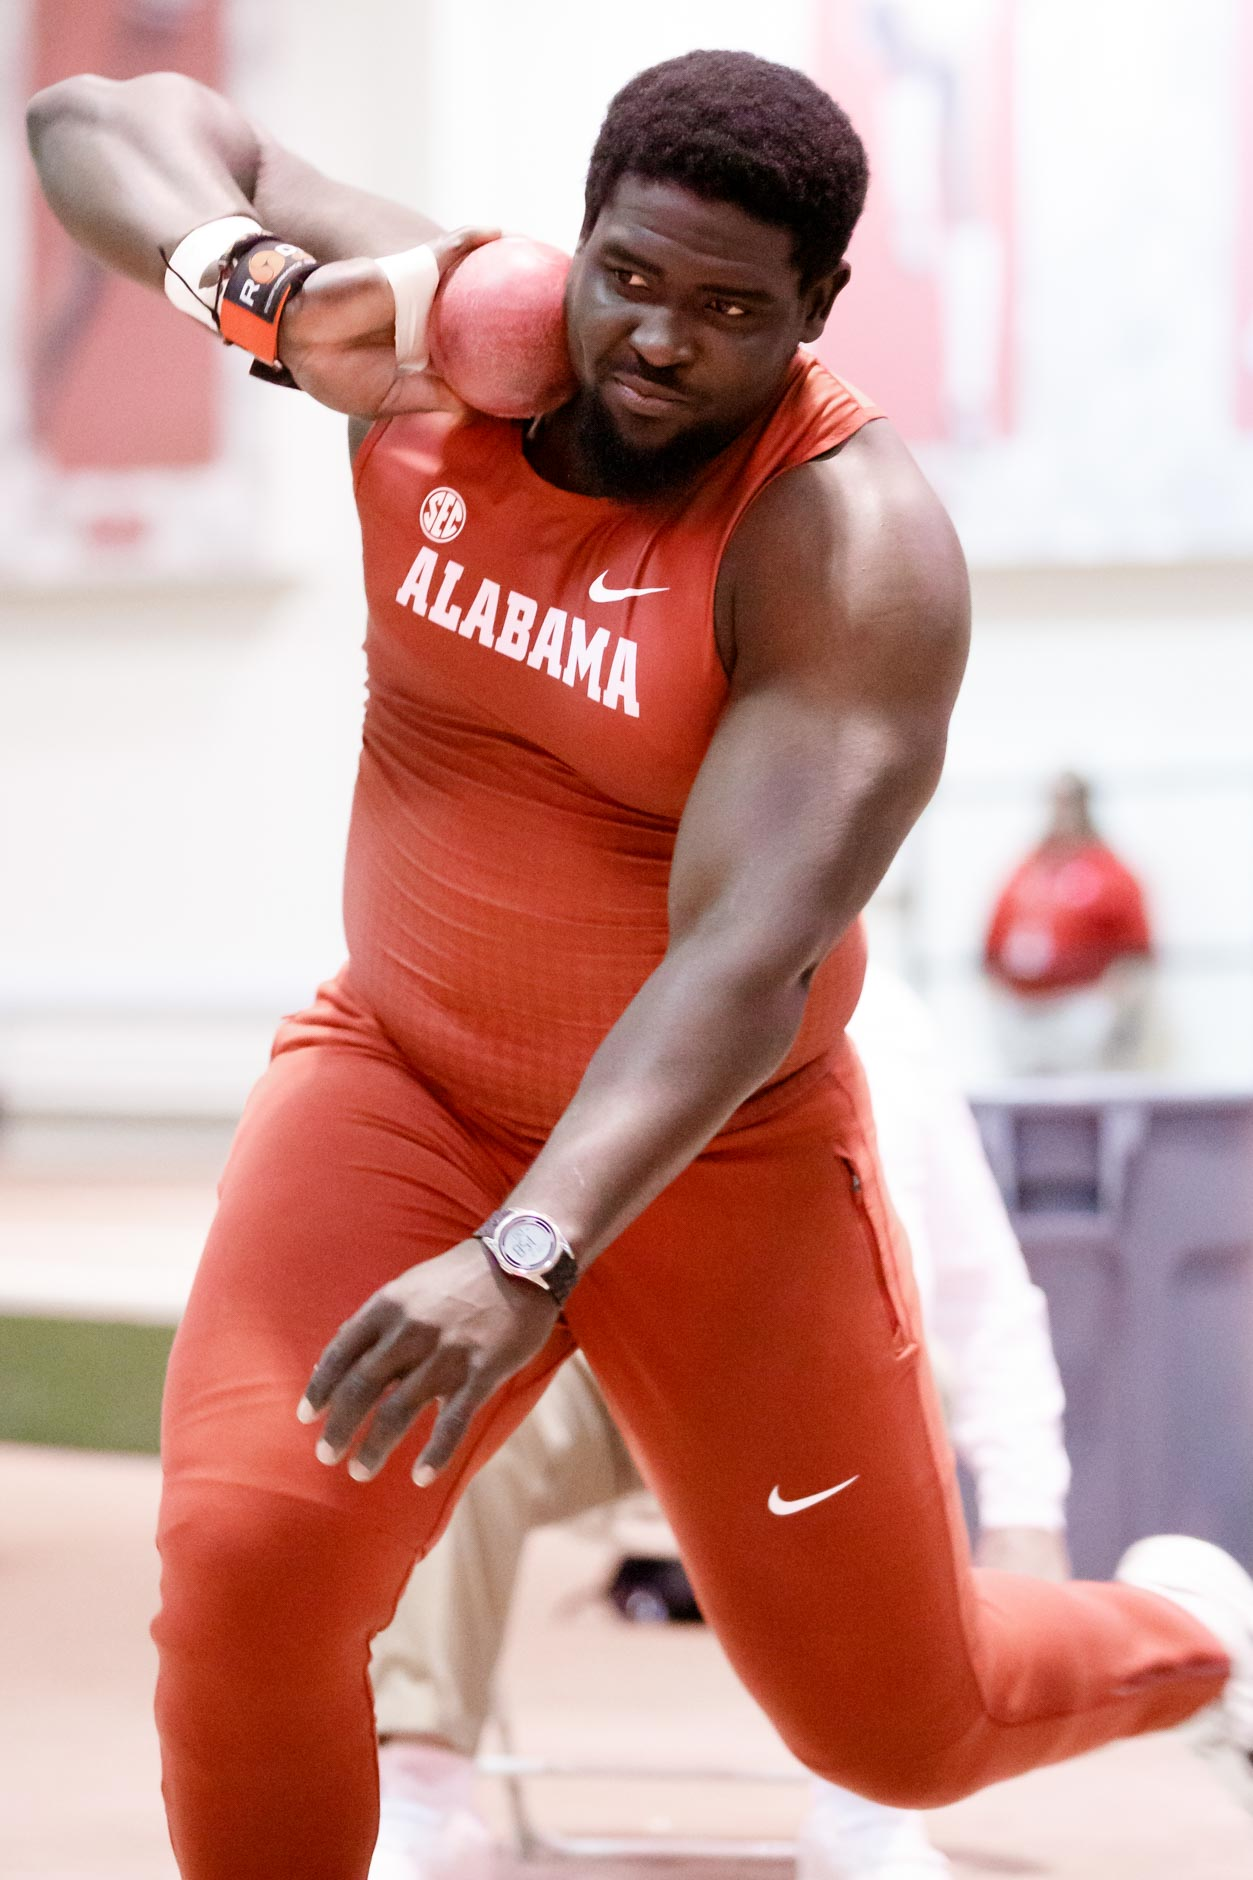 Alabama's Isaac Odugbesan competes in the shot put during the Indiana University Relays in Bloomington, Indiana on Saturday, Feb. 1, 2020. (Photo by James Brosher)